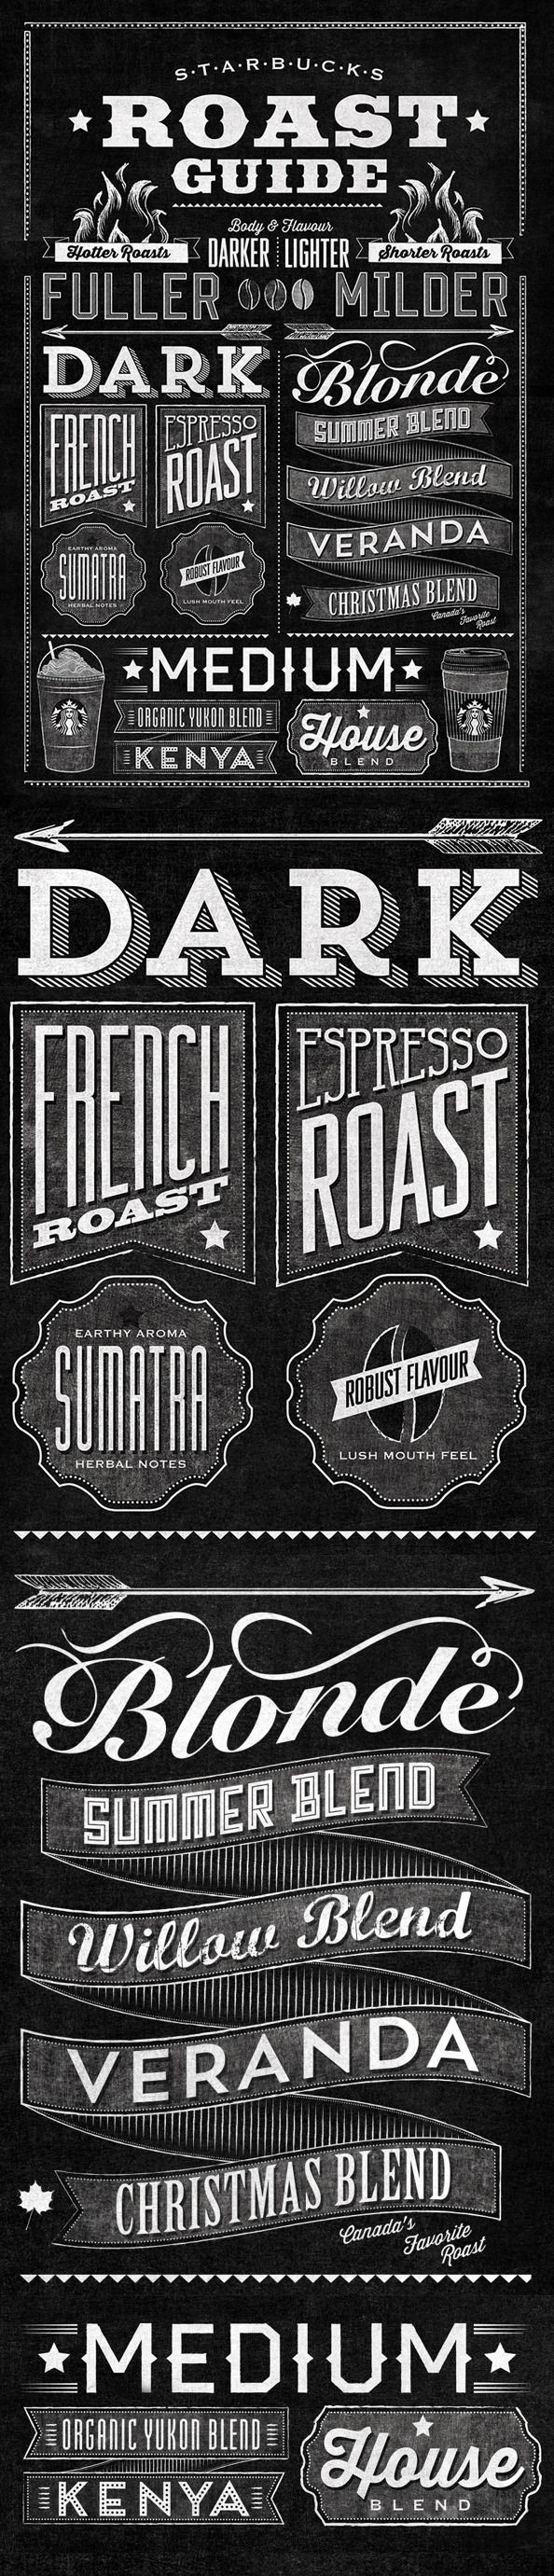 Starbucks Roast Guide Typographic Mural by Jaymie McAmmond, via Behance